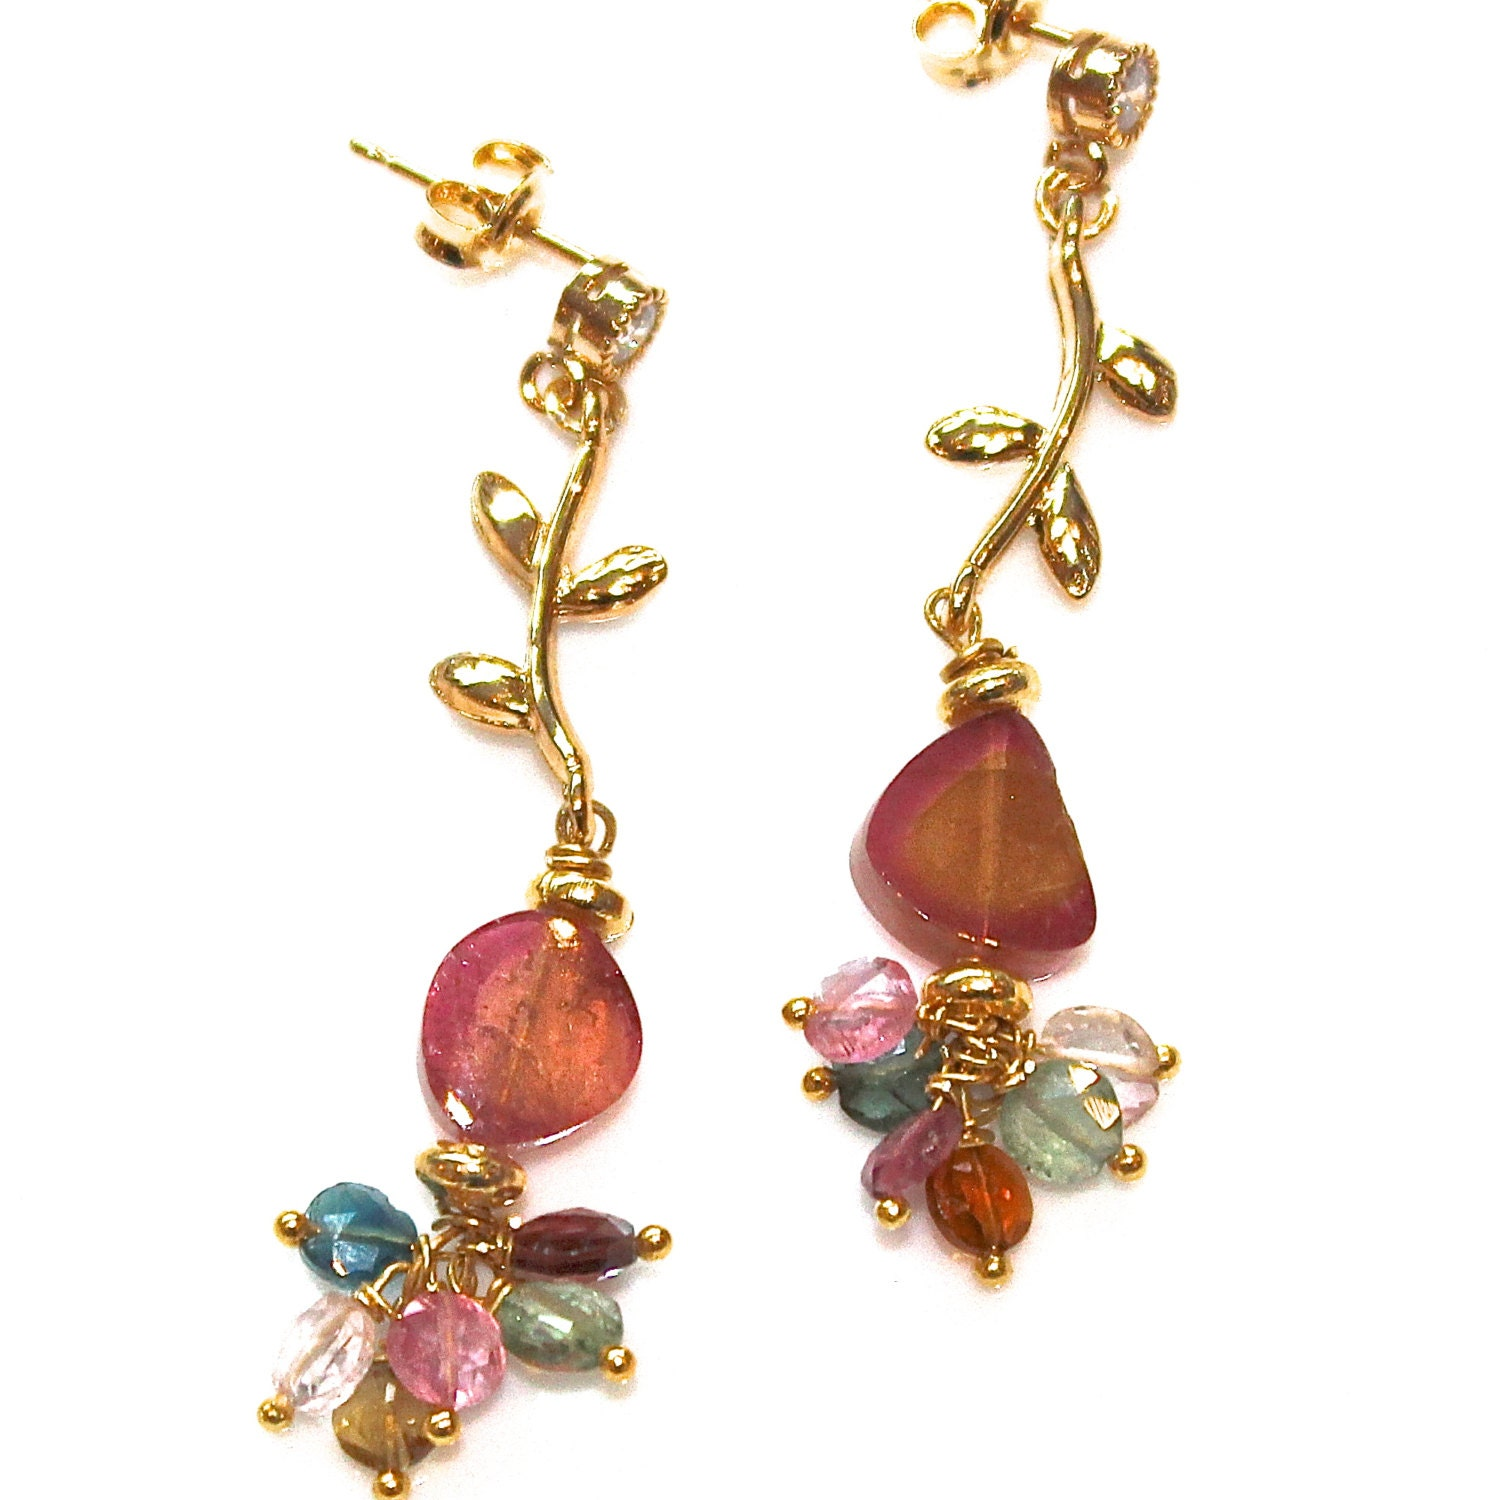 watermelon tourmaline slice earrings pink yellow tourmaline